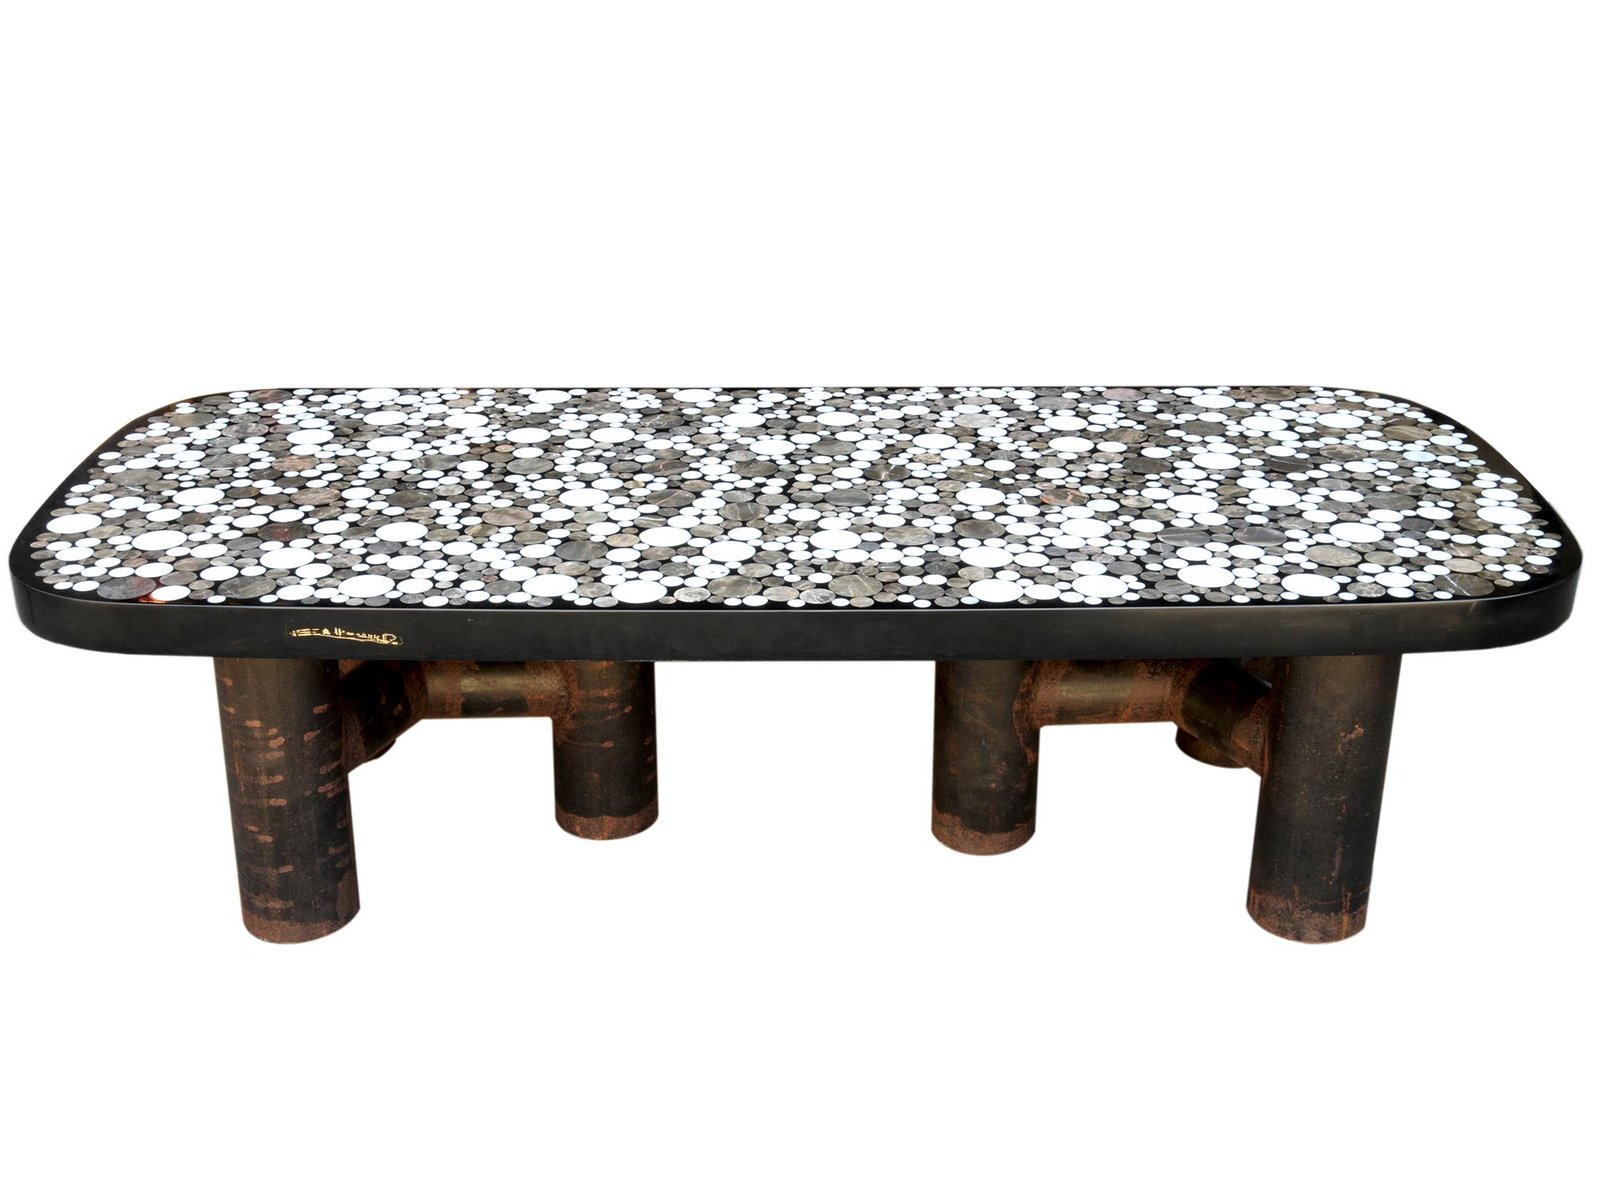 Coffee Table With Marble Inlay By Etienne Allemeersch, 1970s